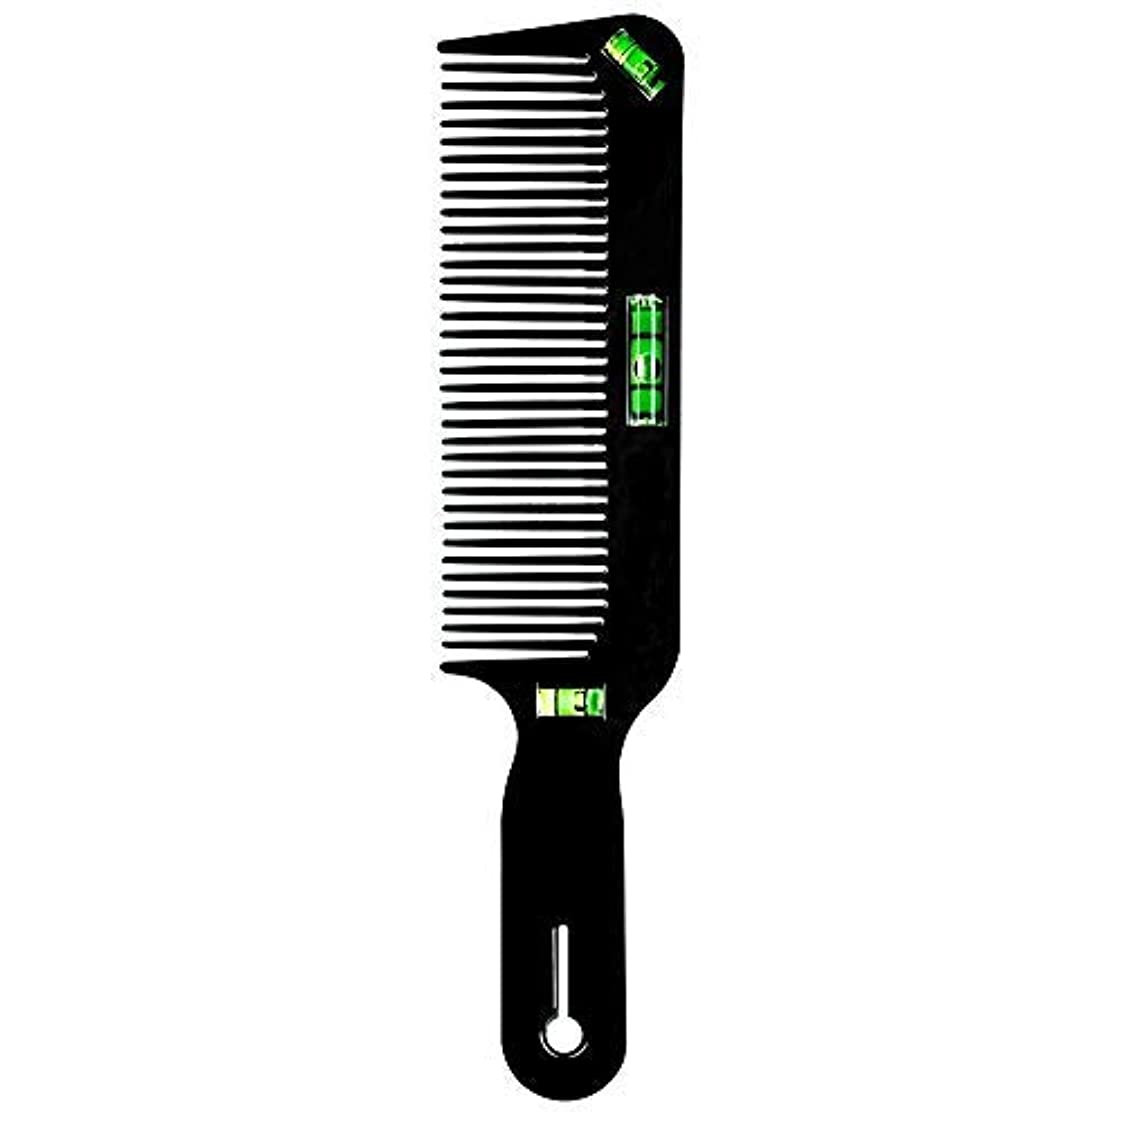 スライス夜間作るBurmax Scalpmaster Clipper Comb With Levels [並行輸入品]